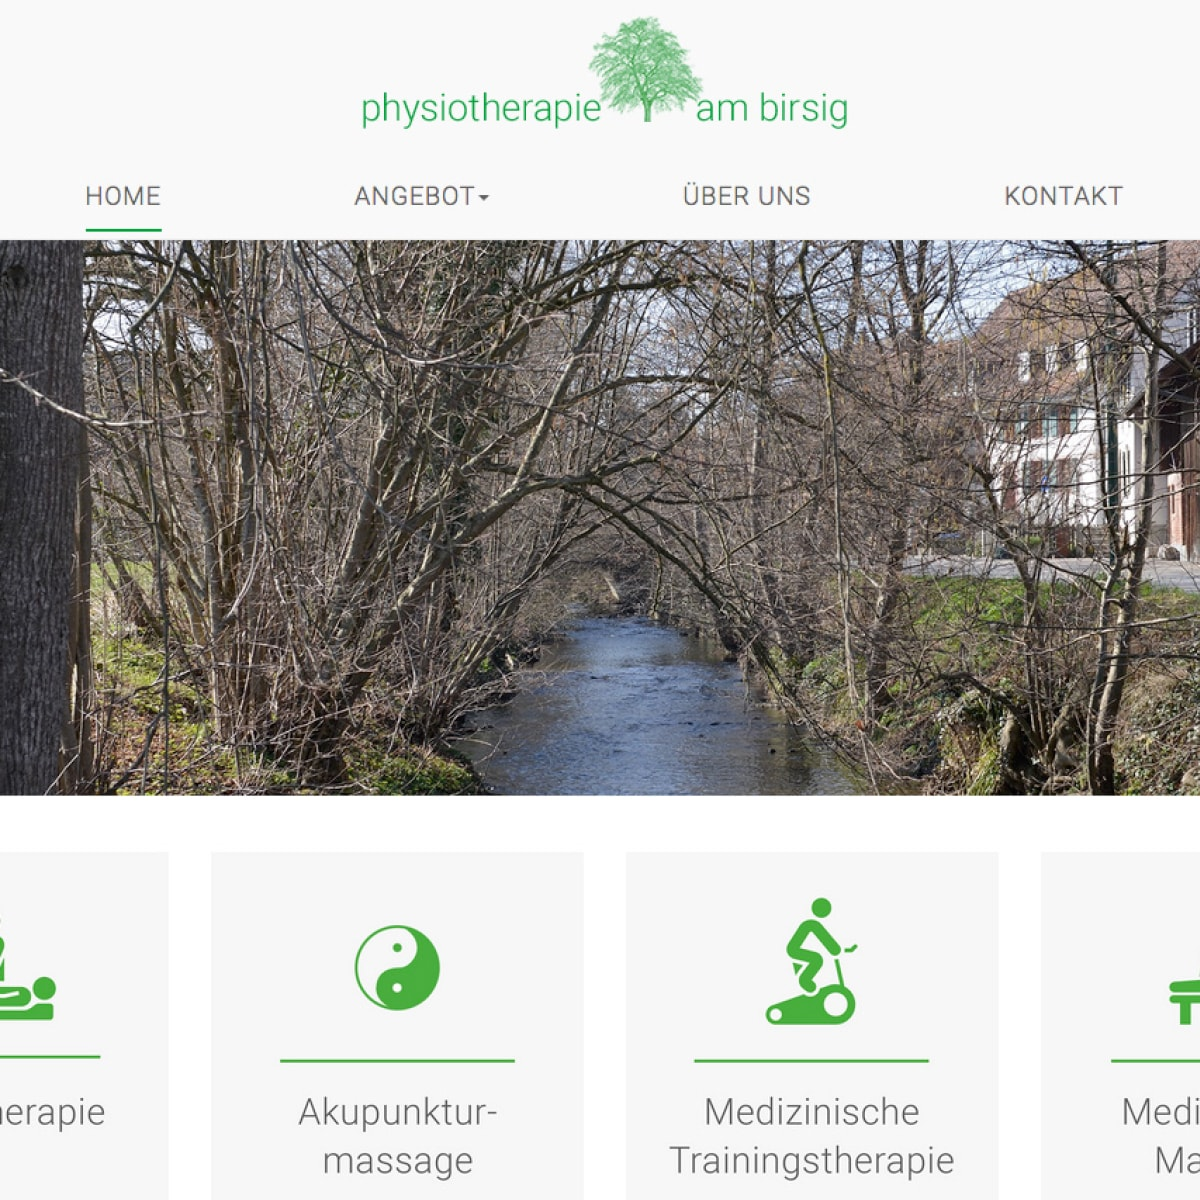 Physiotherapie am Birsig